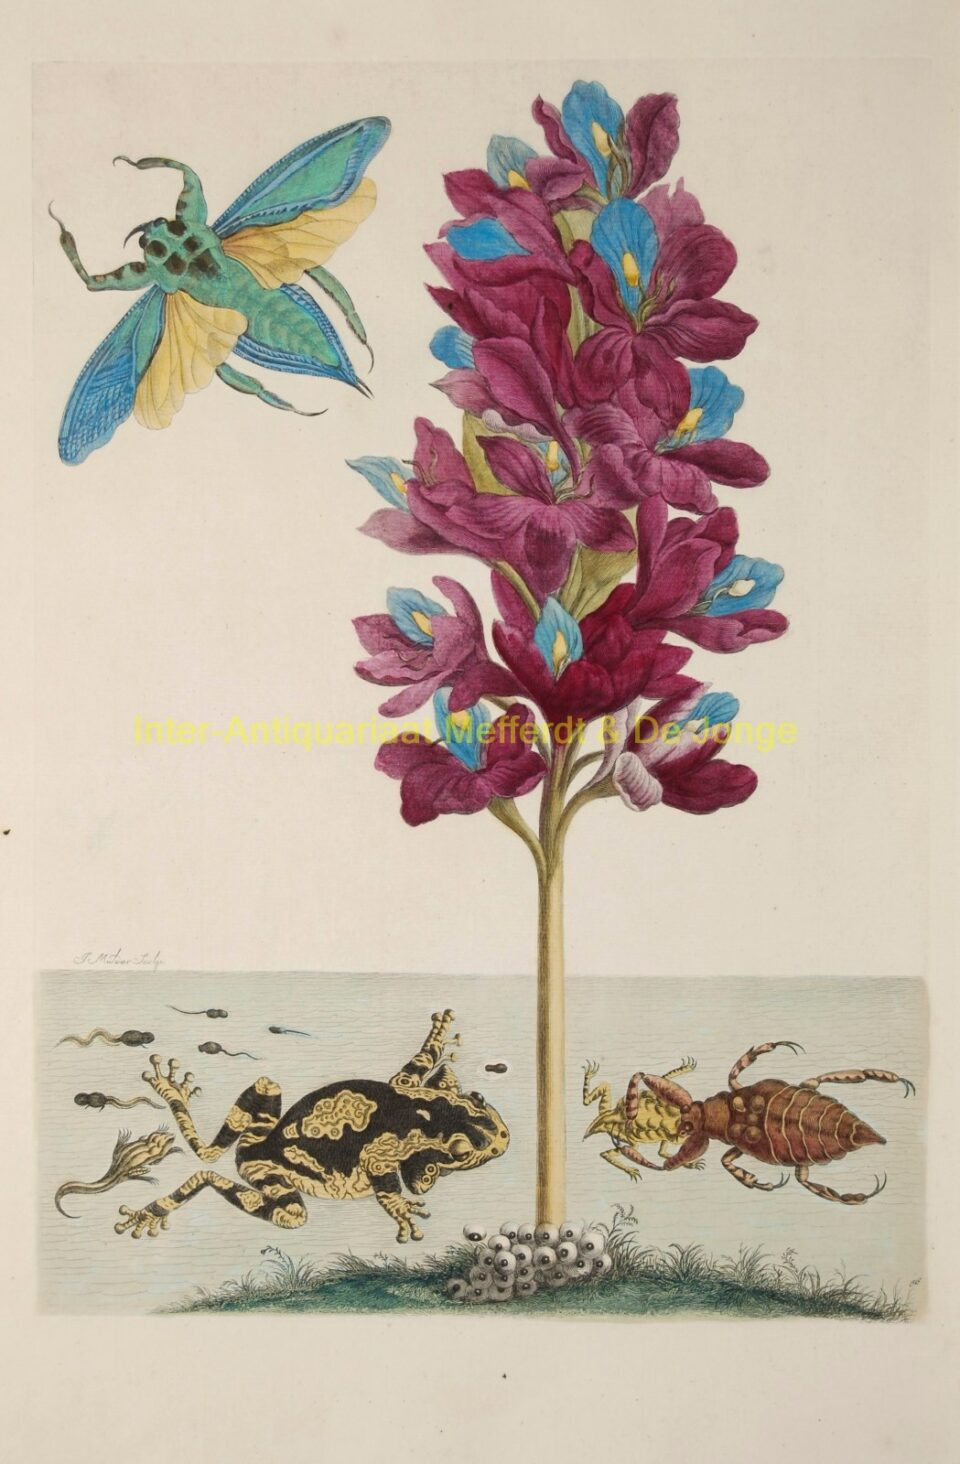 Maria Sibylla Merian - waterscorpion